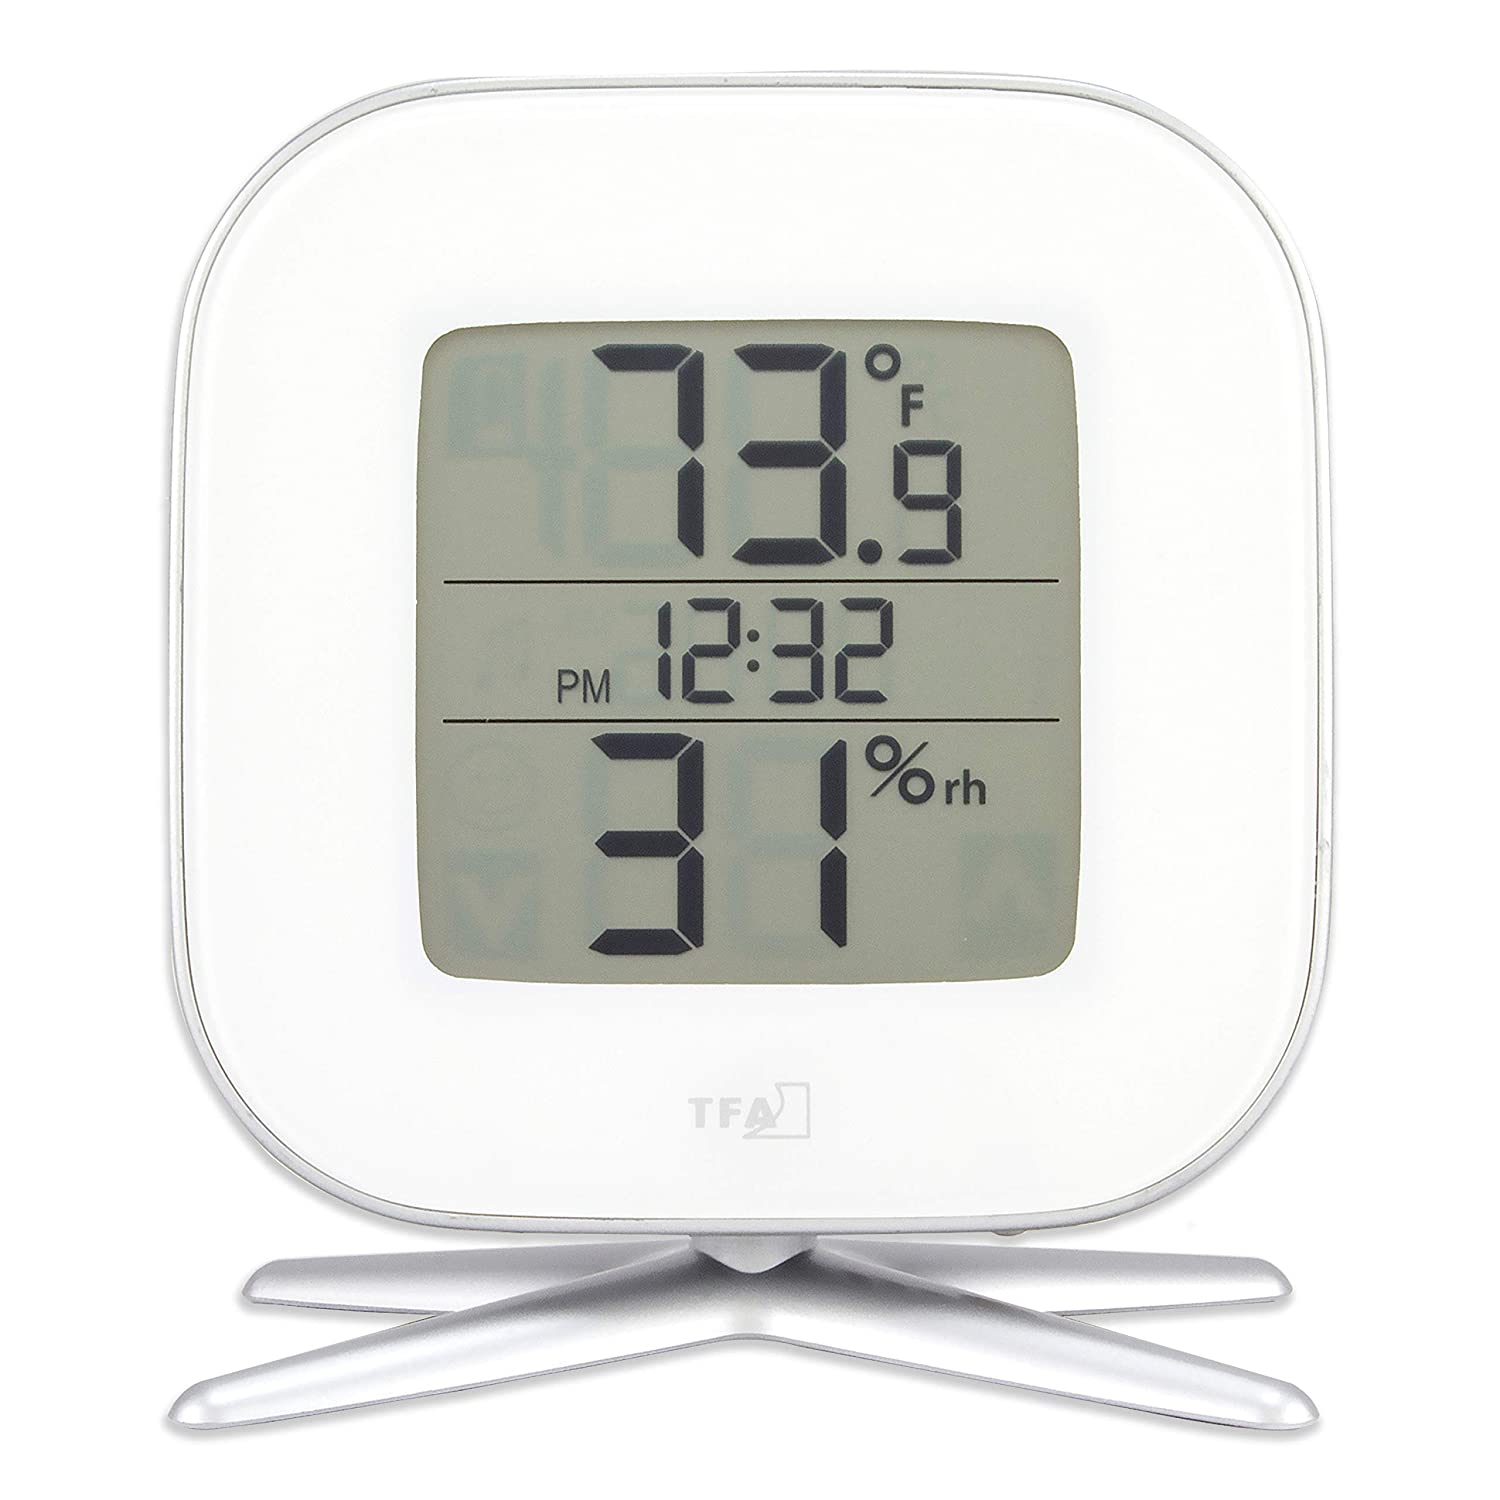 La Crosse Technology 30.5030.02 Tivi Digital Thermo-Hygrometer with Time, White TFA Dostmann